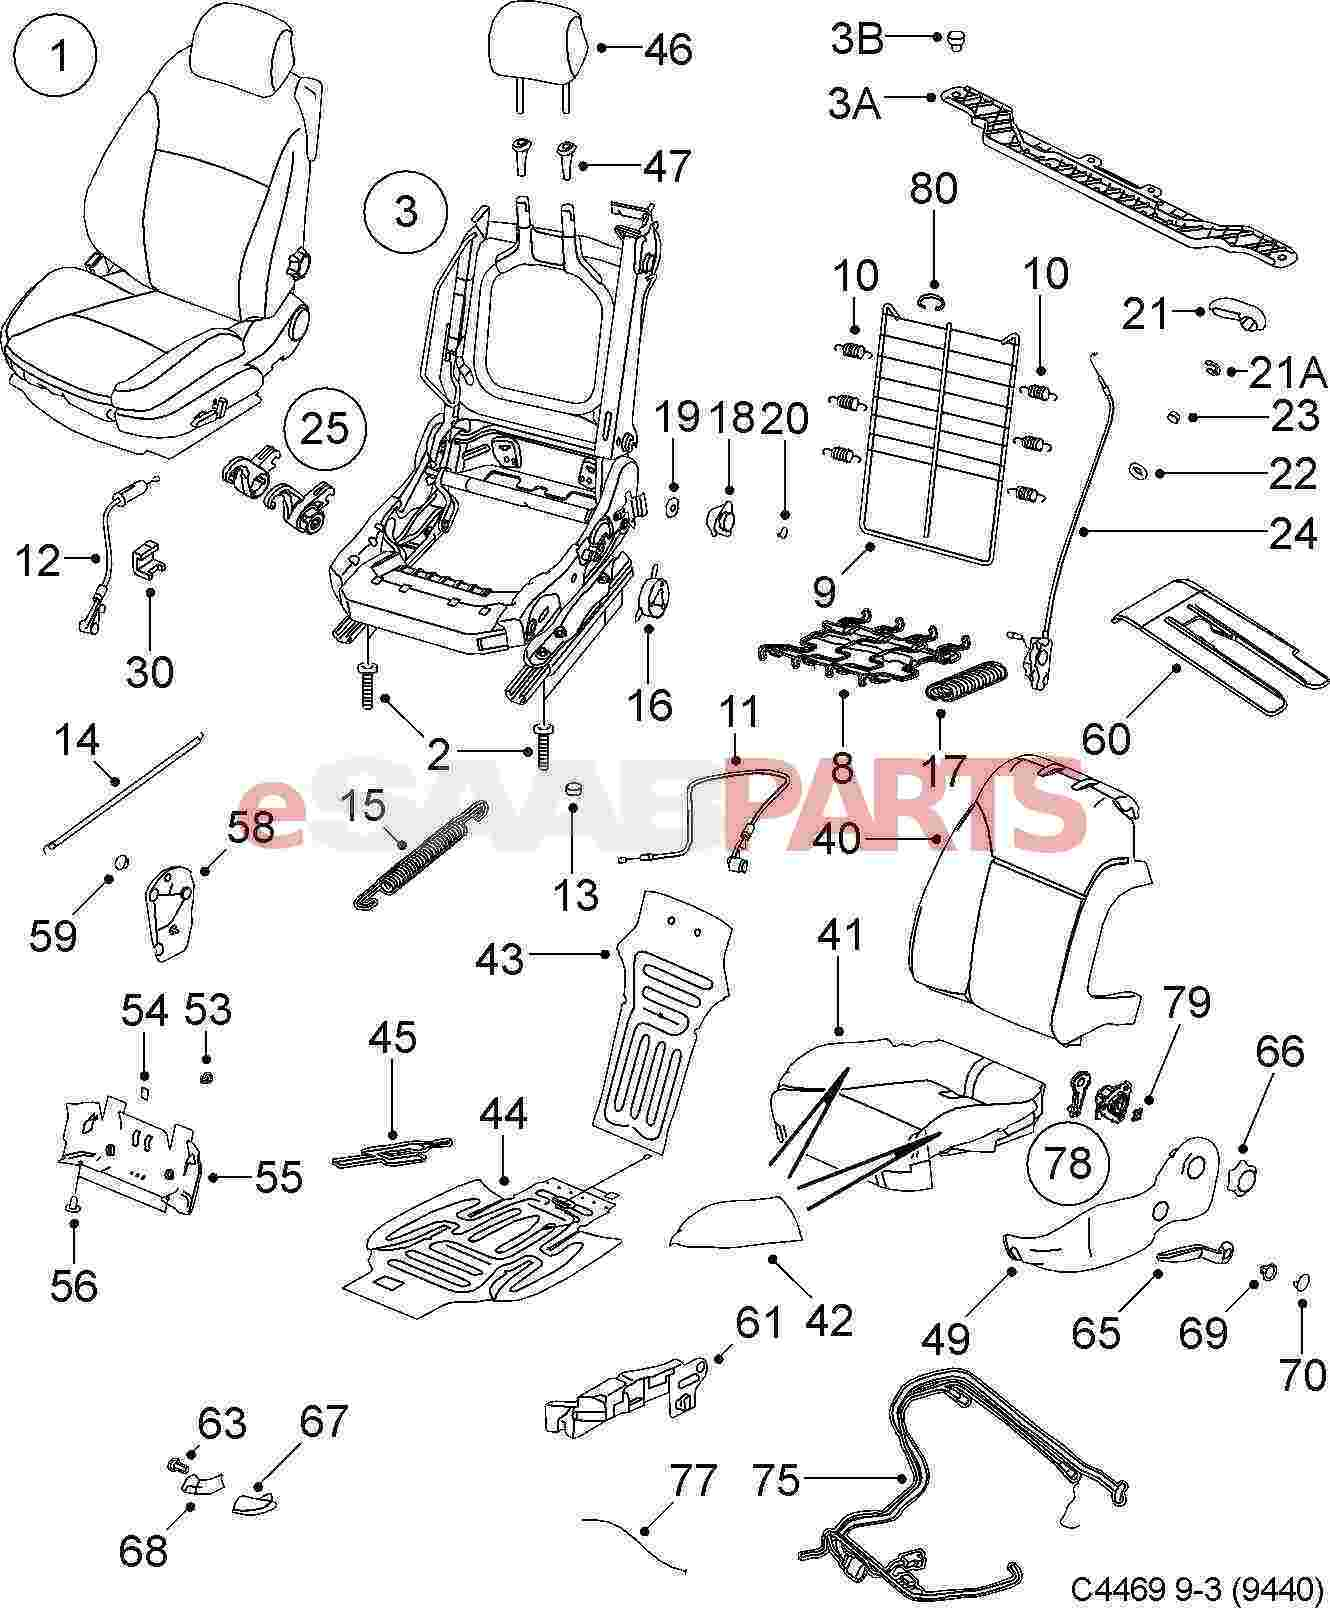 2003 Saab 9 3 Wiring Diagram. Saab. Wiring Diagram Images